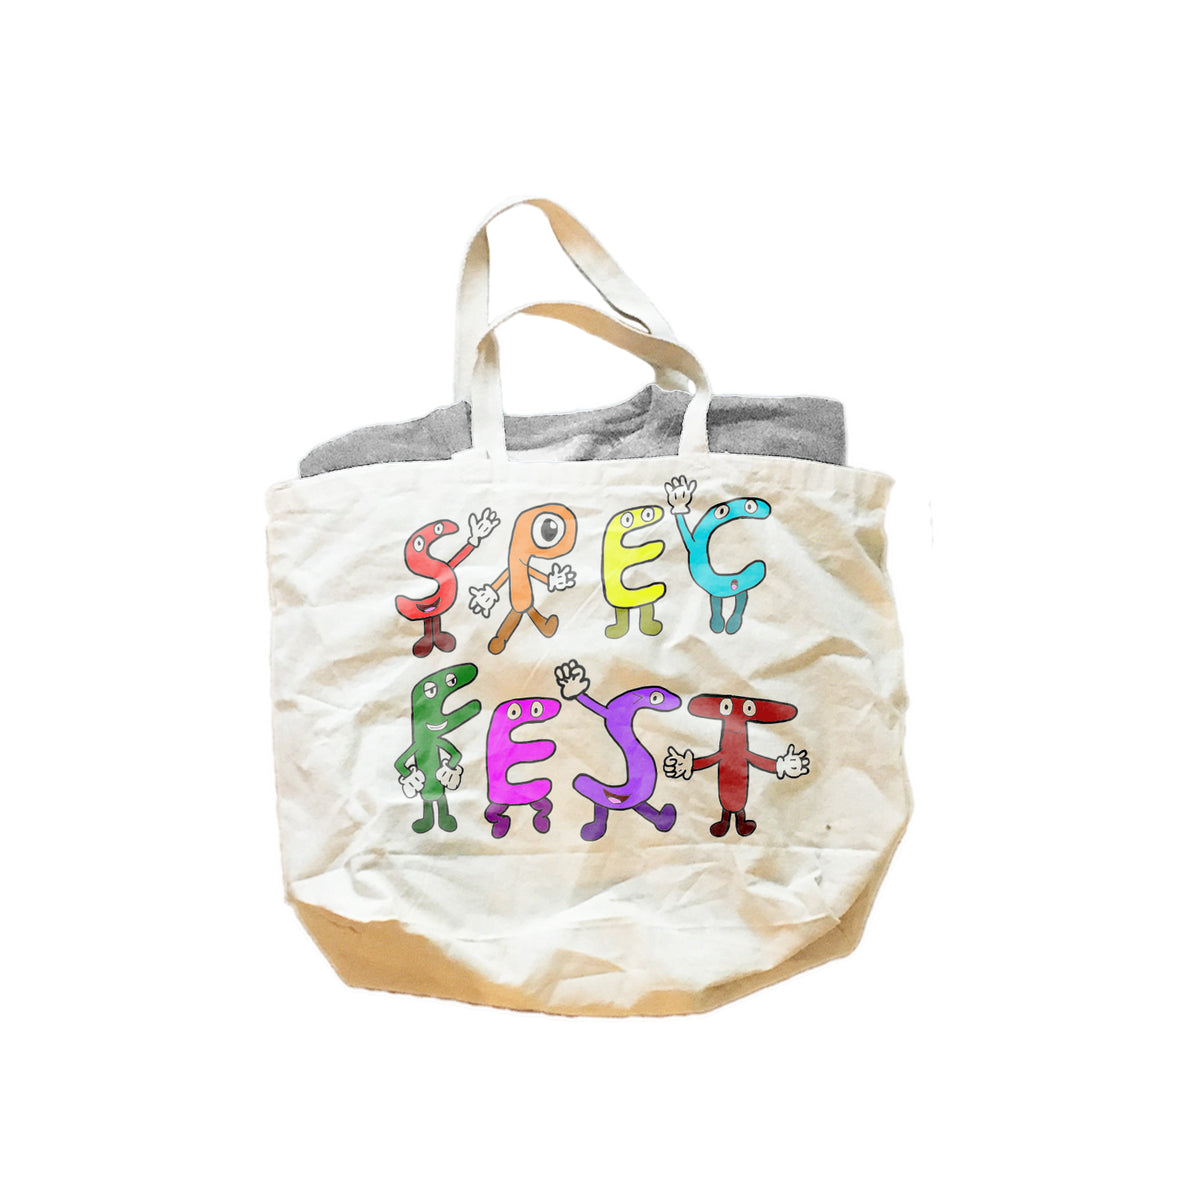 Spec Fest Logo Jumbo Cotton Canvas Tote Bag